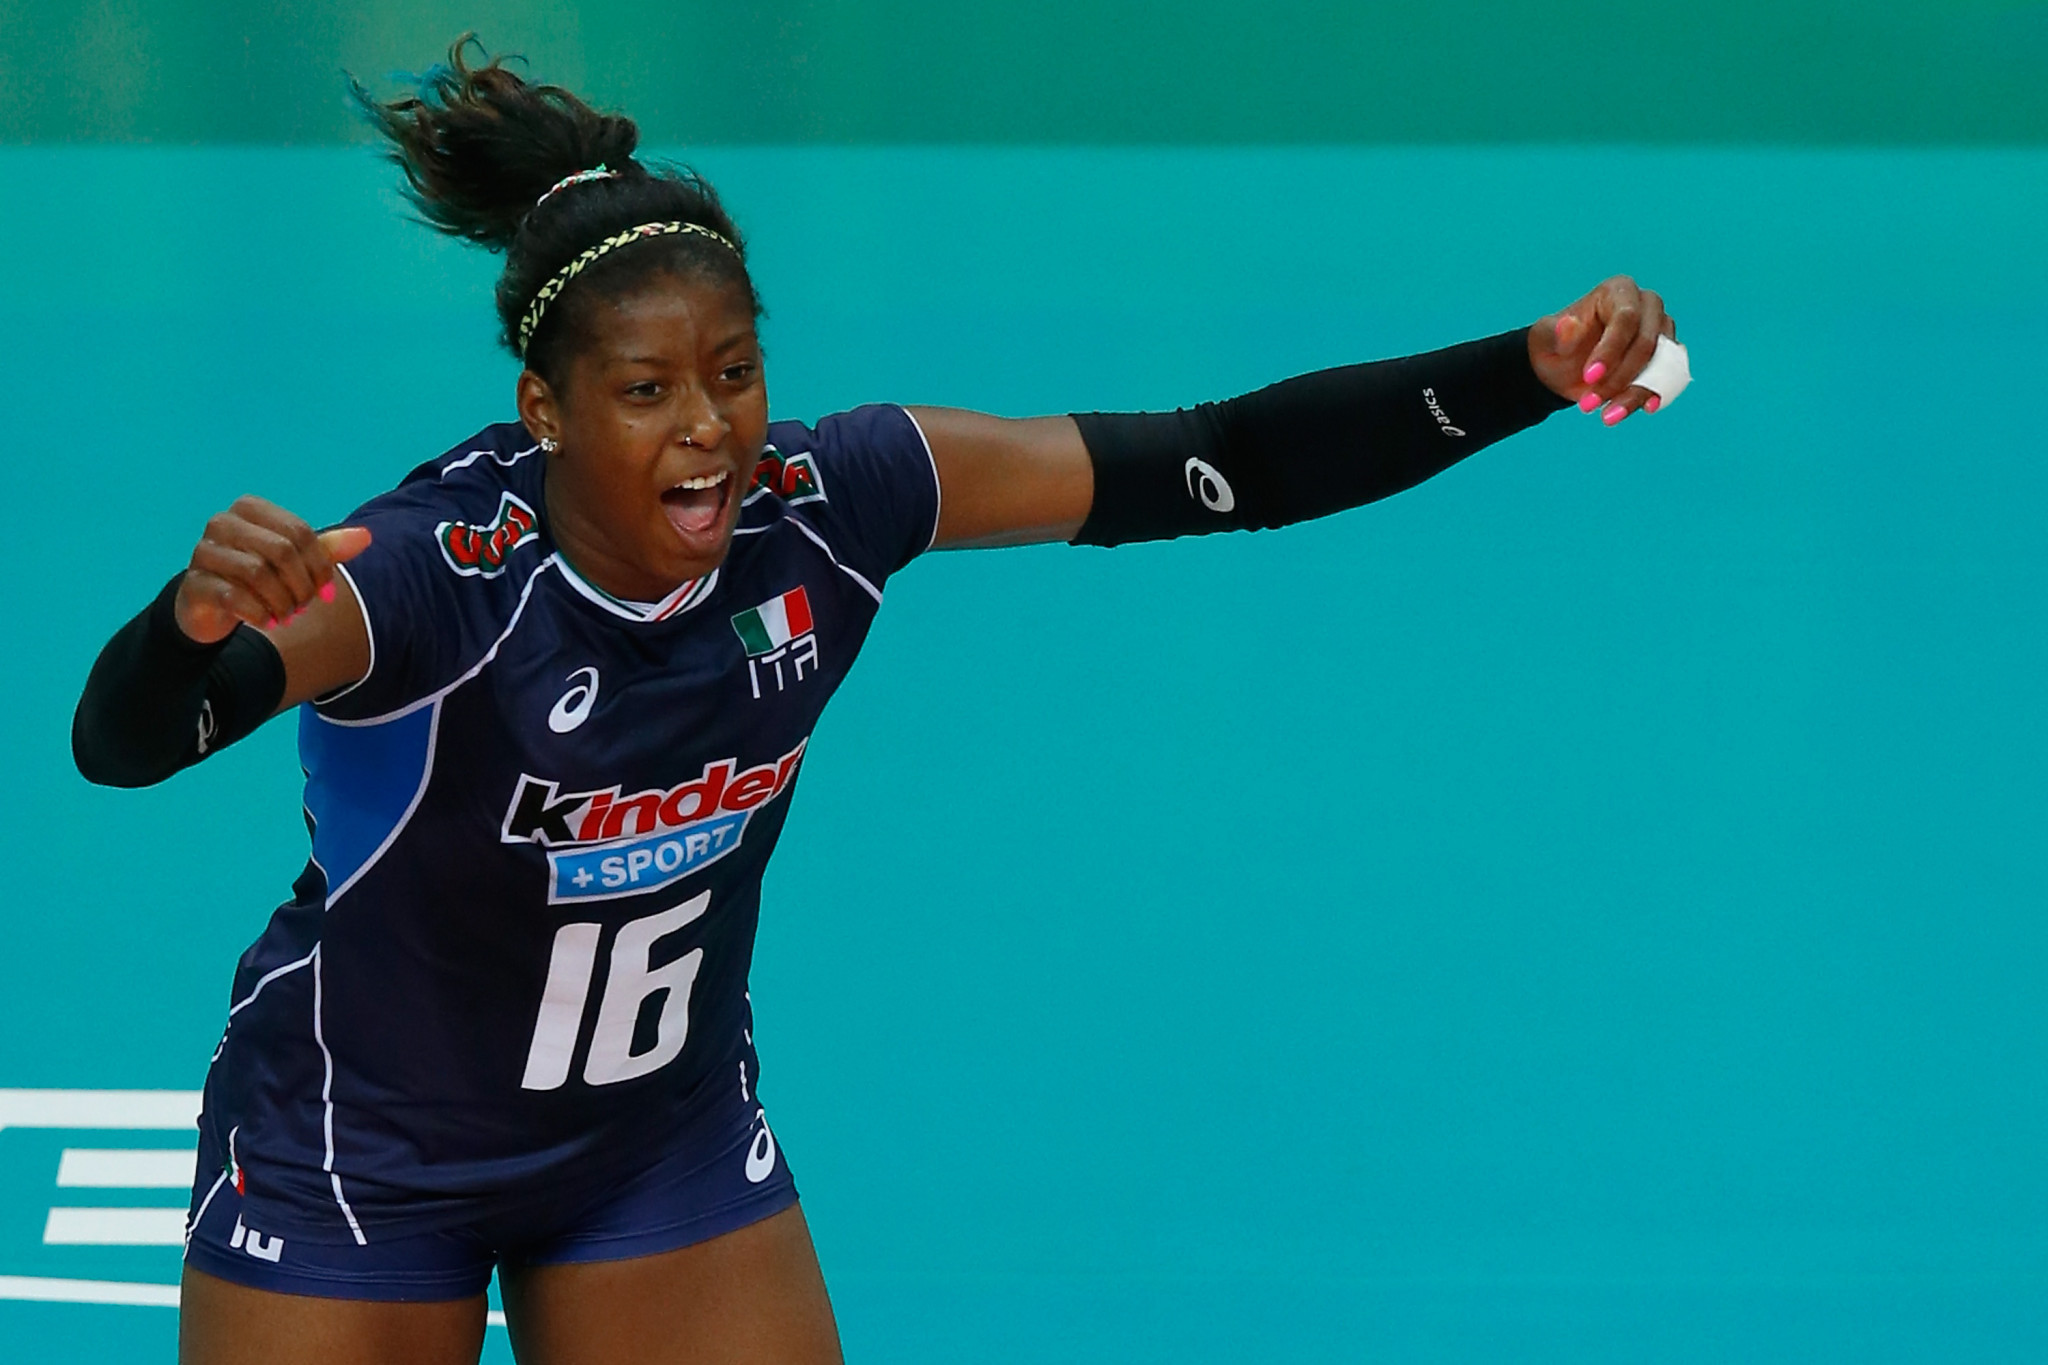 Volleyball star Sylla believes Tokyo 2020 postponement will enhance Italian team